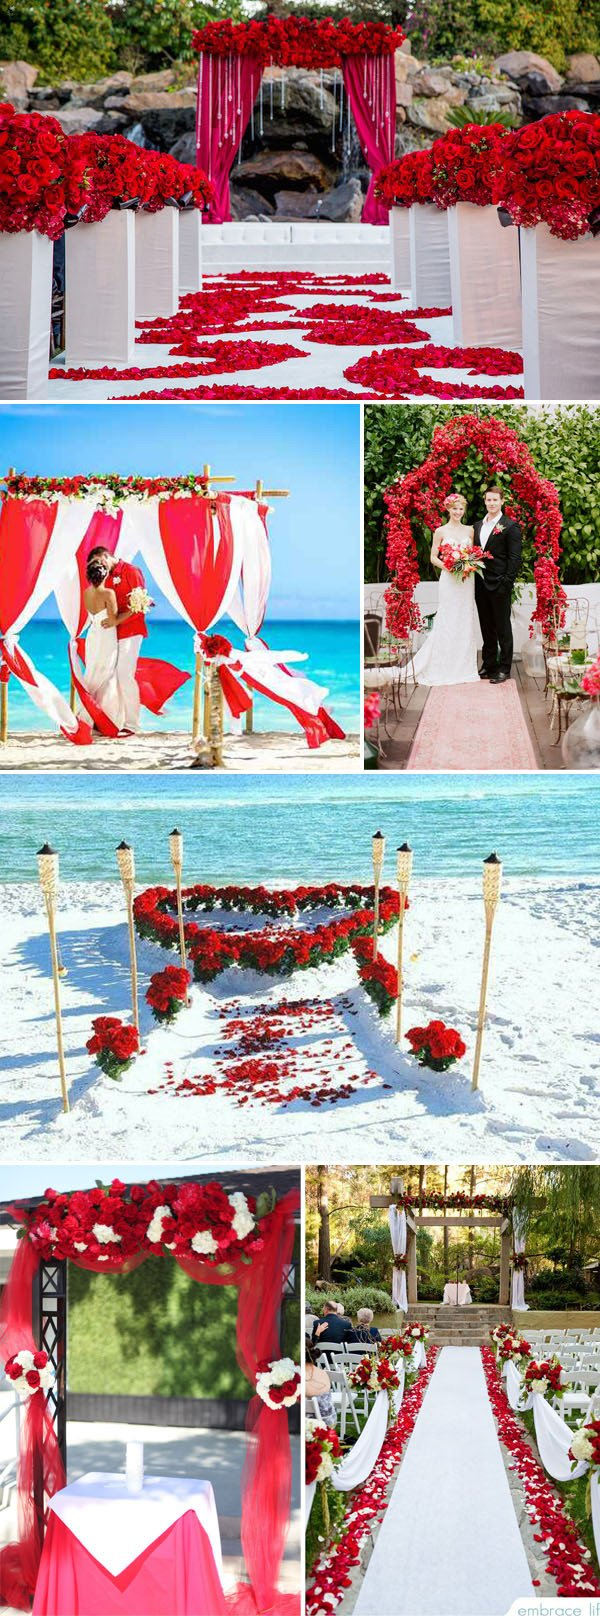 Wedding Decor Red and White New 40 Inspirational Classic Red and White Wedding Ideas